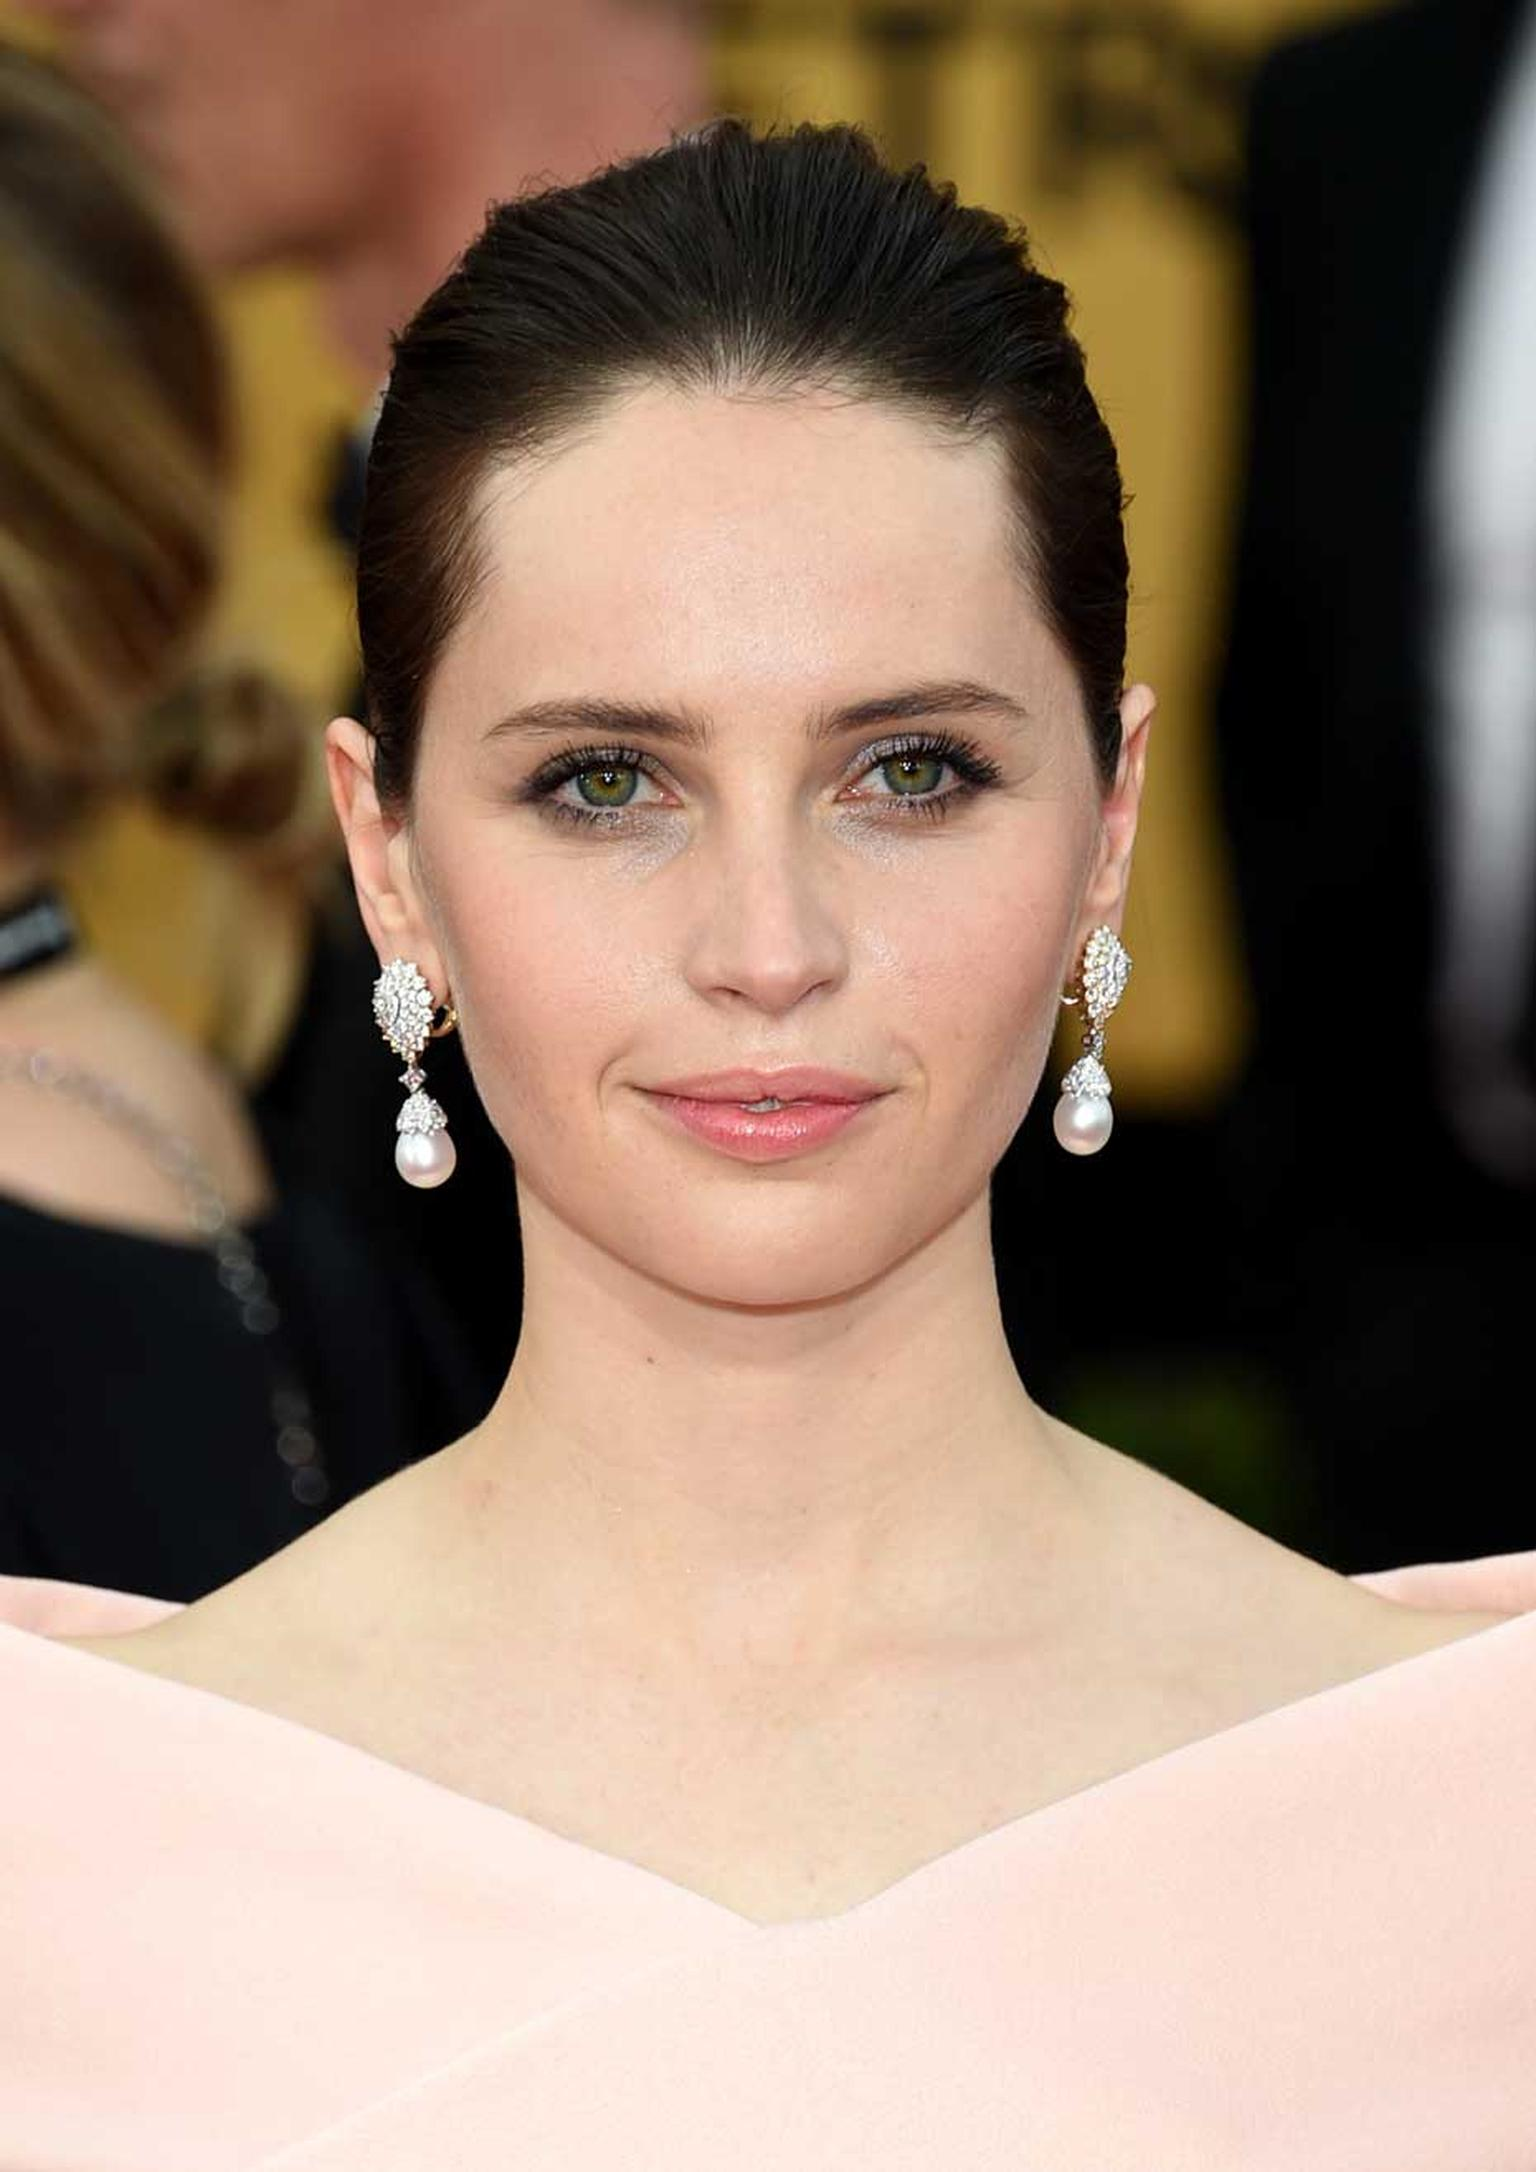 SAG-Awards-2015_Felicity-Jones_Van-Cleef&Arpels_PhotobyEthan-MillerGetty-Ima.jpg